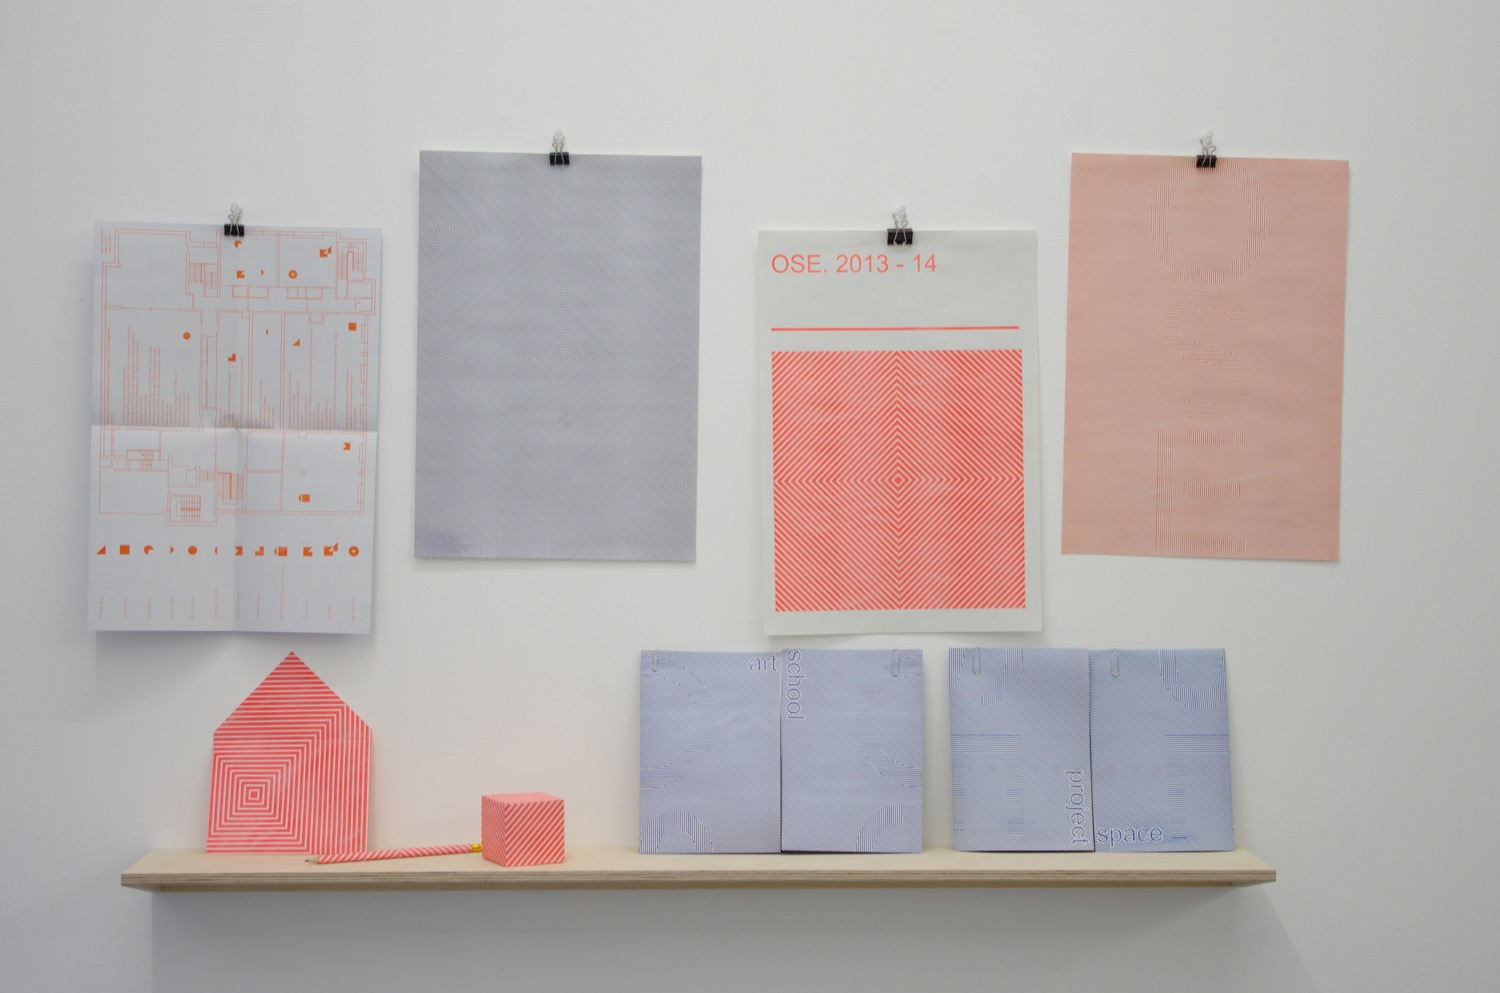 Yemi Awosile, Ephemera, installation view at PEER, 2014